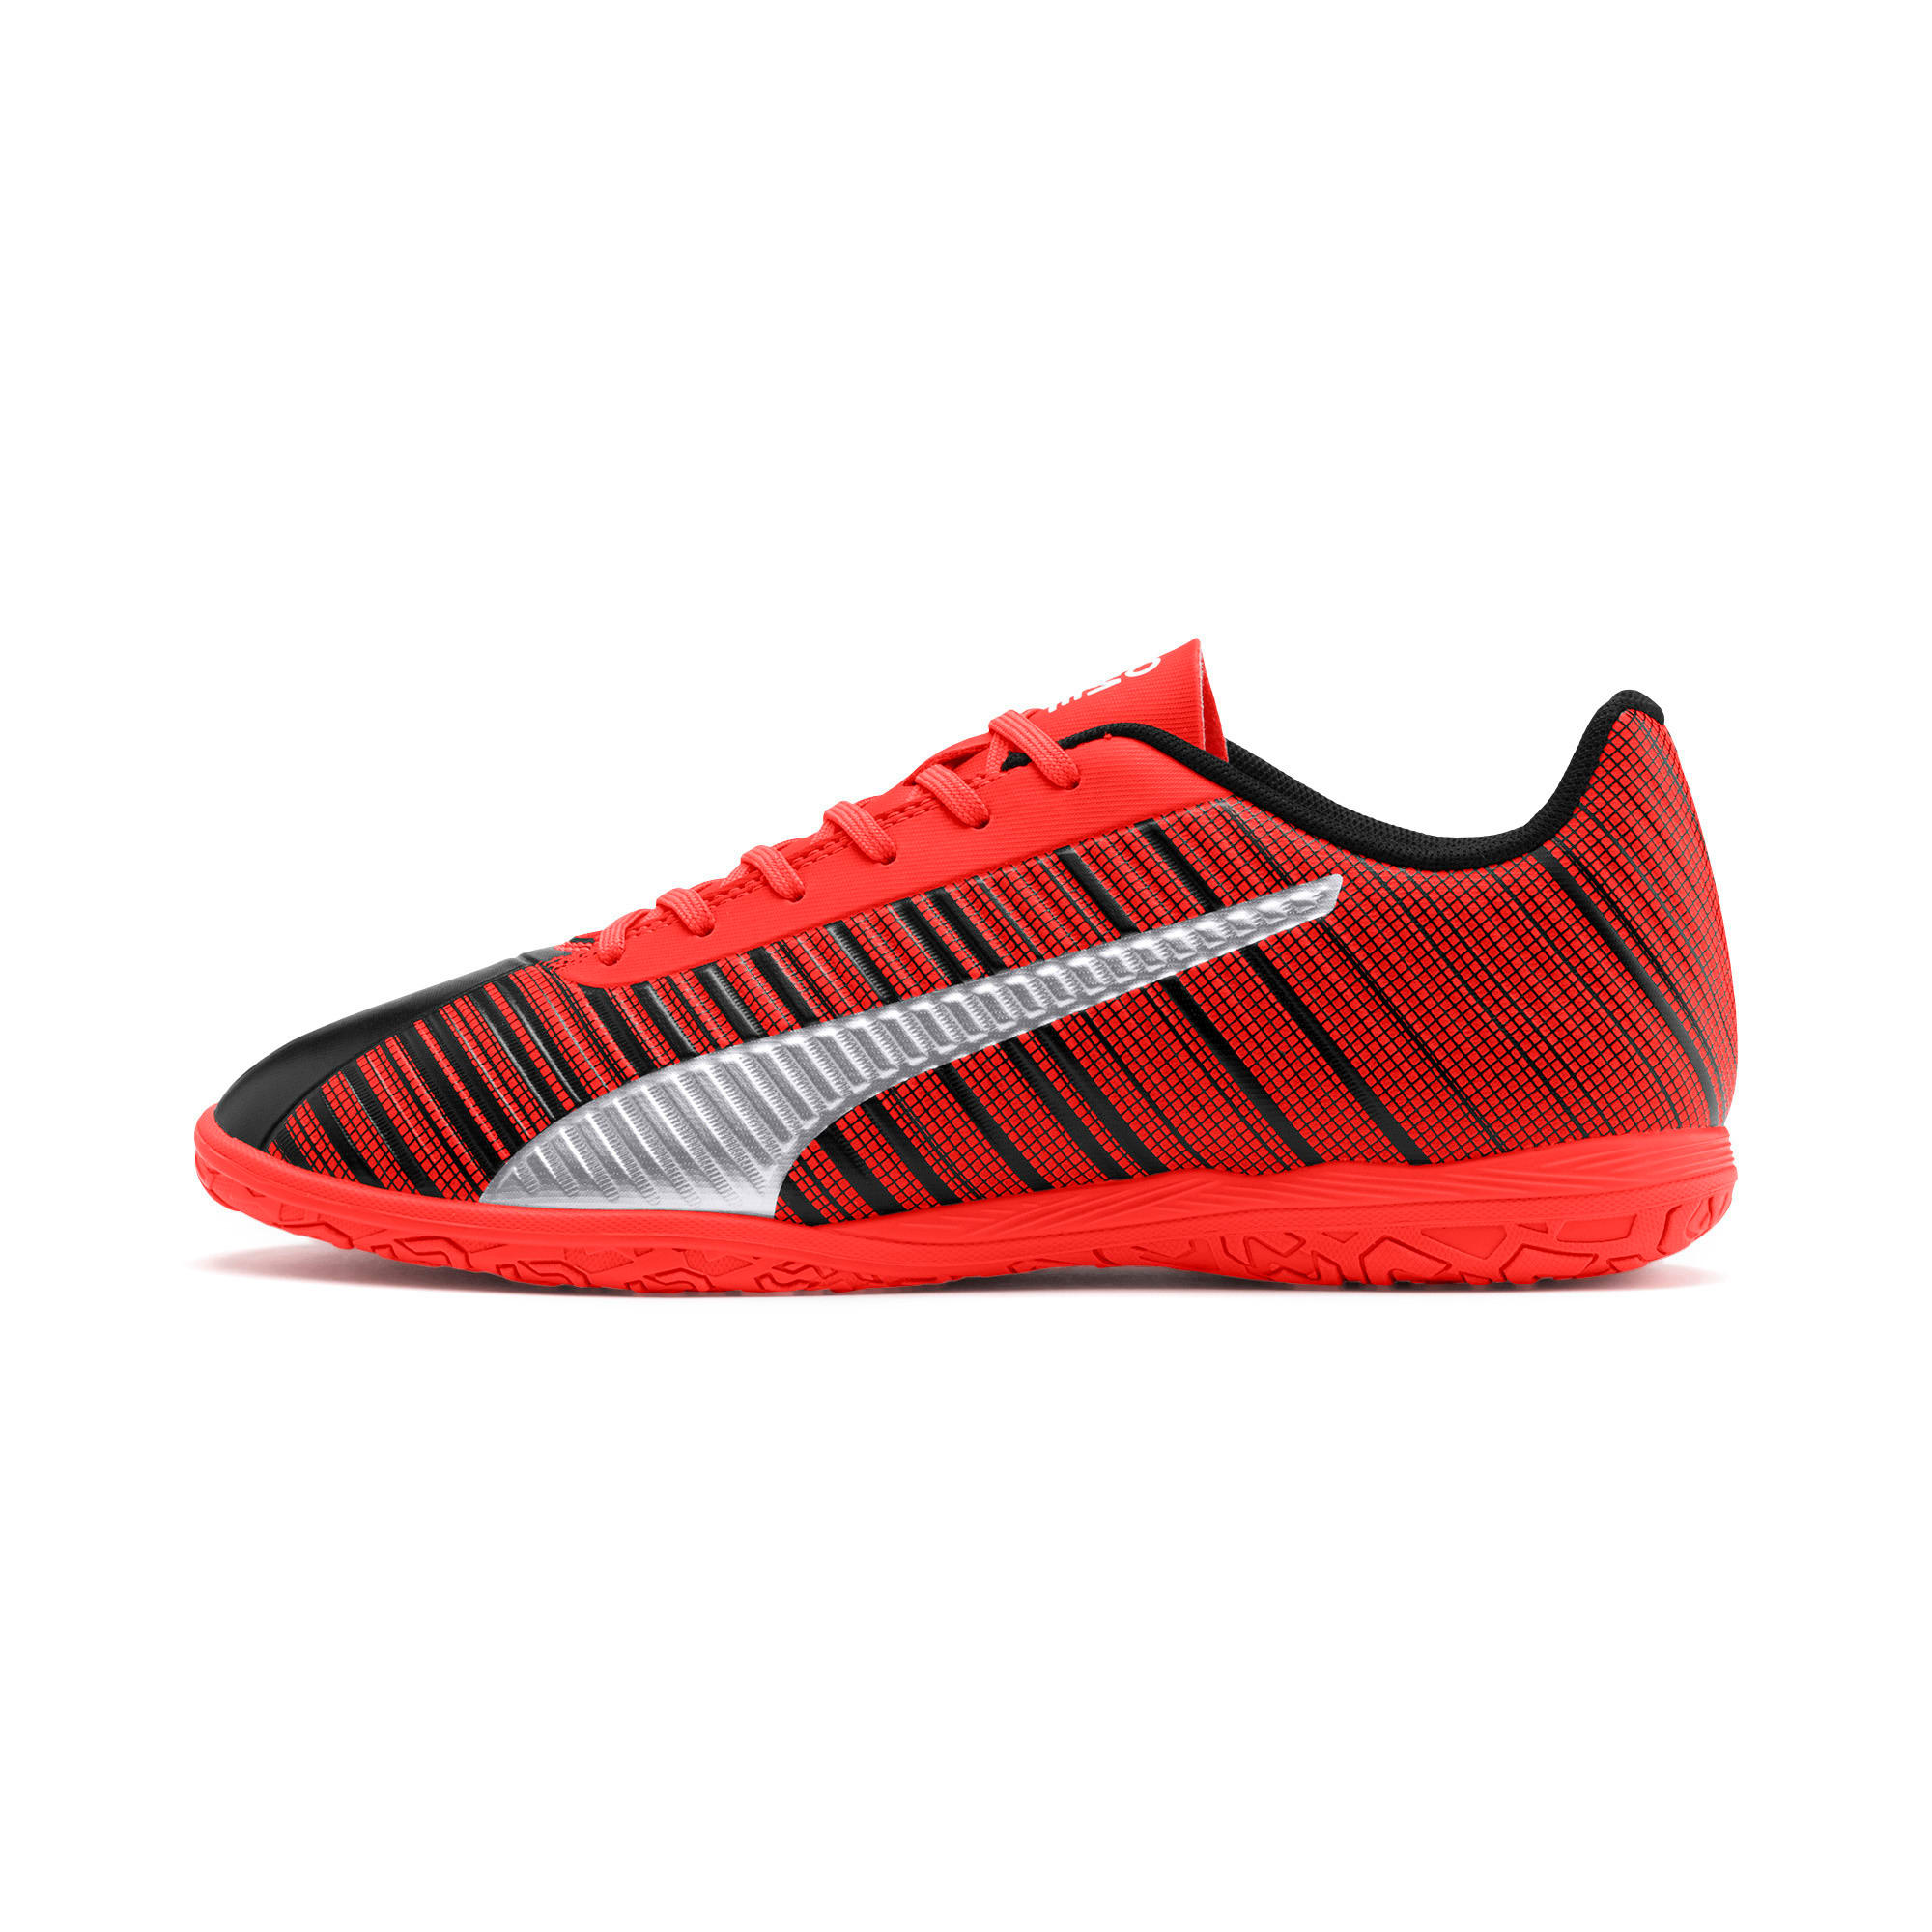 Thumbnail 1 of Chaussure de foot PUMA ONE 5.4 IT pour homme, Black-Nrgy Red-Aged Silver, medium